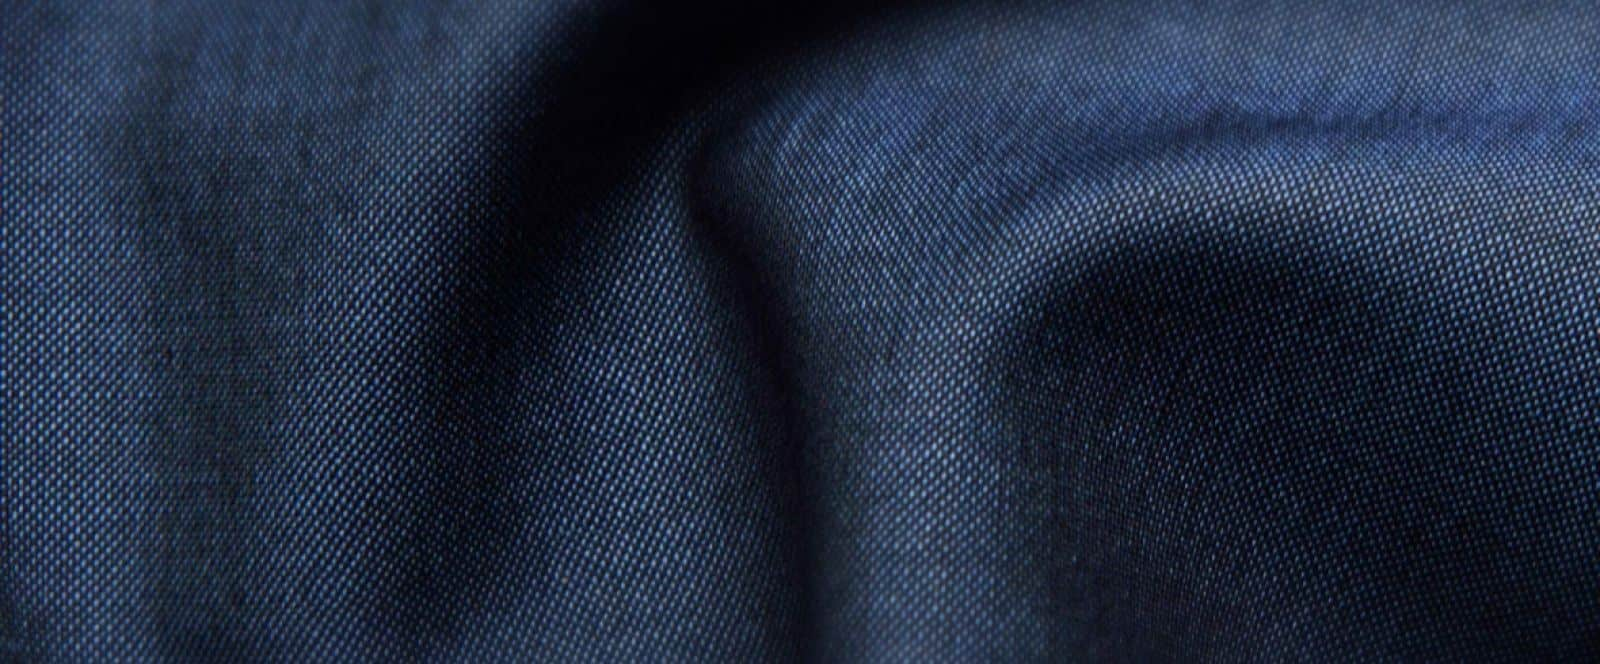 Image result for superfine fabric